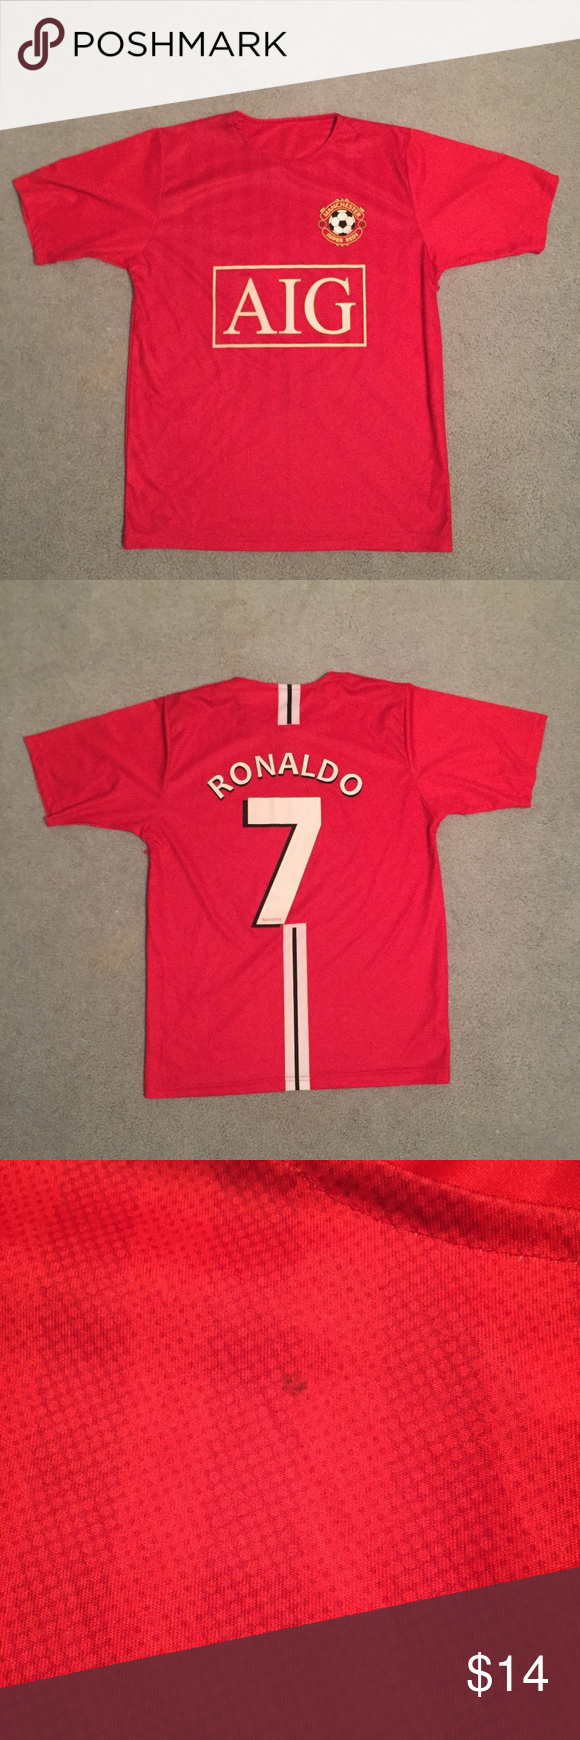 wholesale dealer 37365 a364d AIG Manchester United Football Jersey #7 CHRISTIANO RONALDO ...